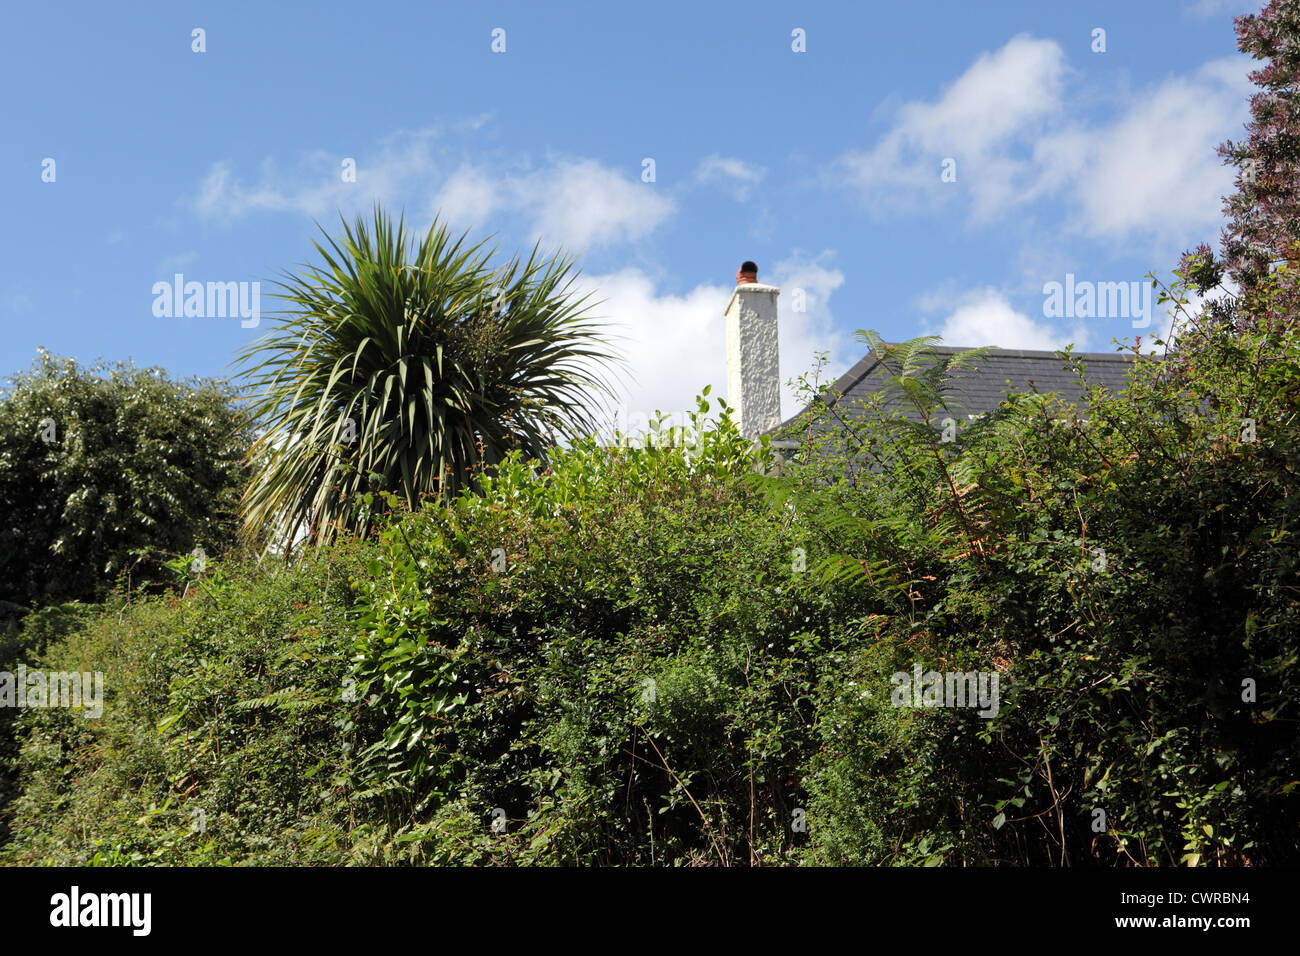 Privacy, house home behind high overgrown hedge and Cornish palm. UK housing stock exterior blue sky sunny, Cornwall, - Stock Image